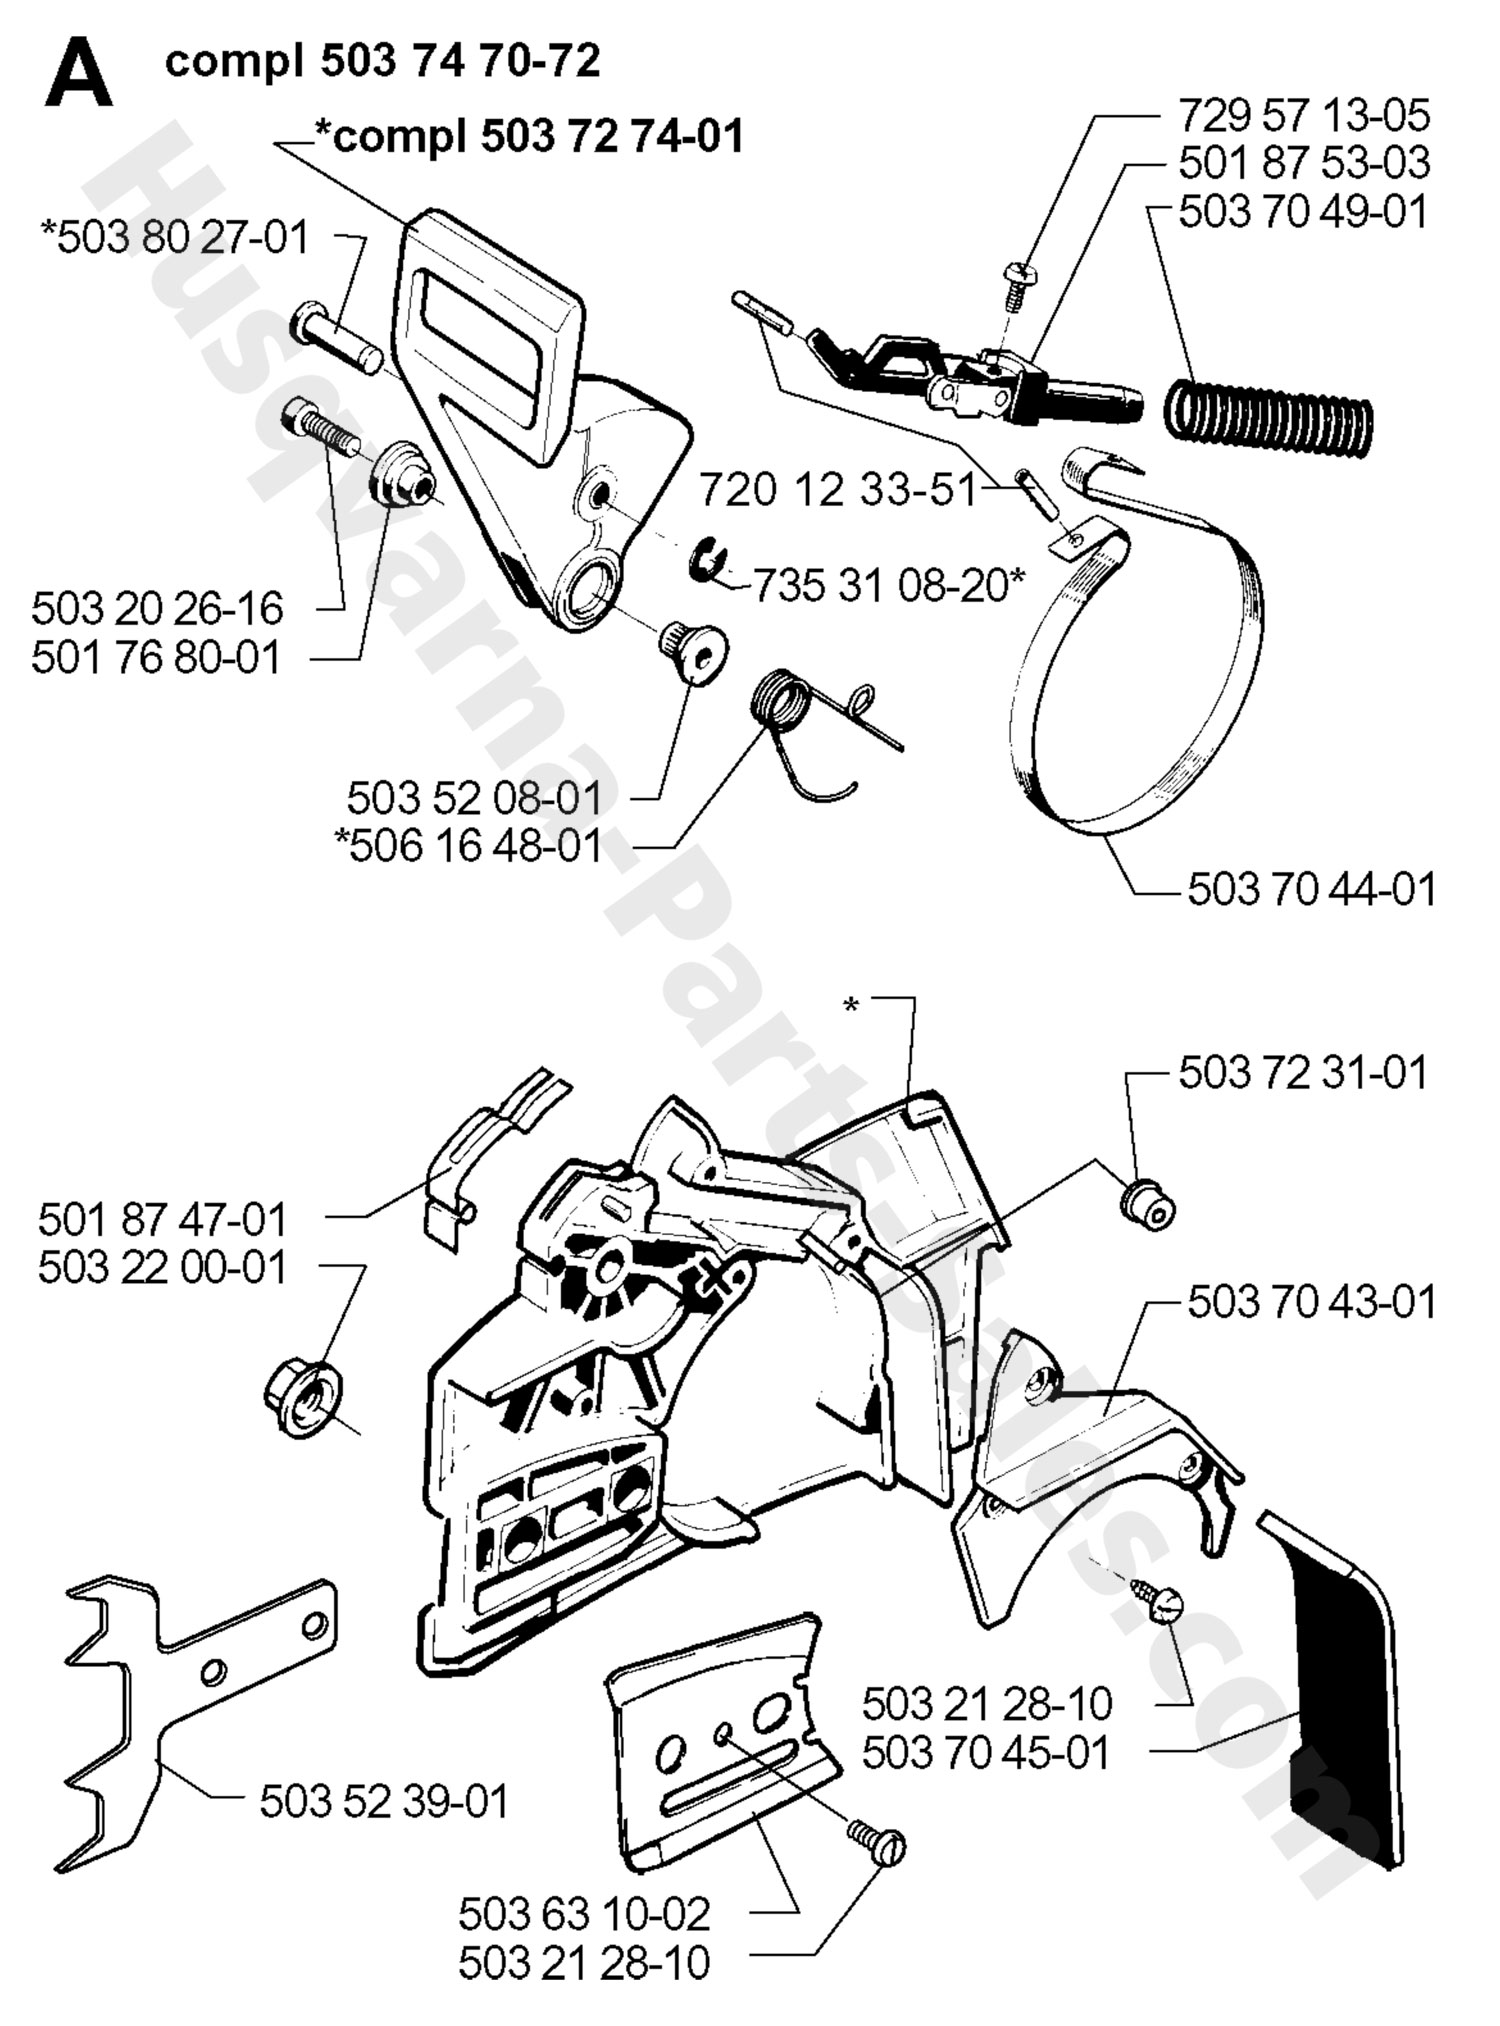 Stihl 290 Farm Boss Diagram Chainsaw Carburetor Free Engine Image For User Chain Drawing At Personal Use 1500x2026